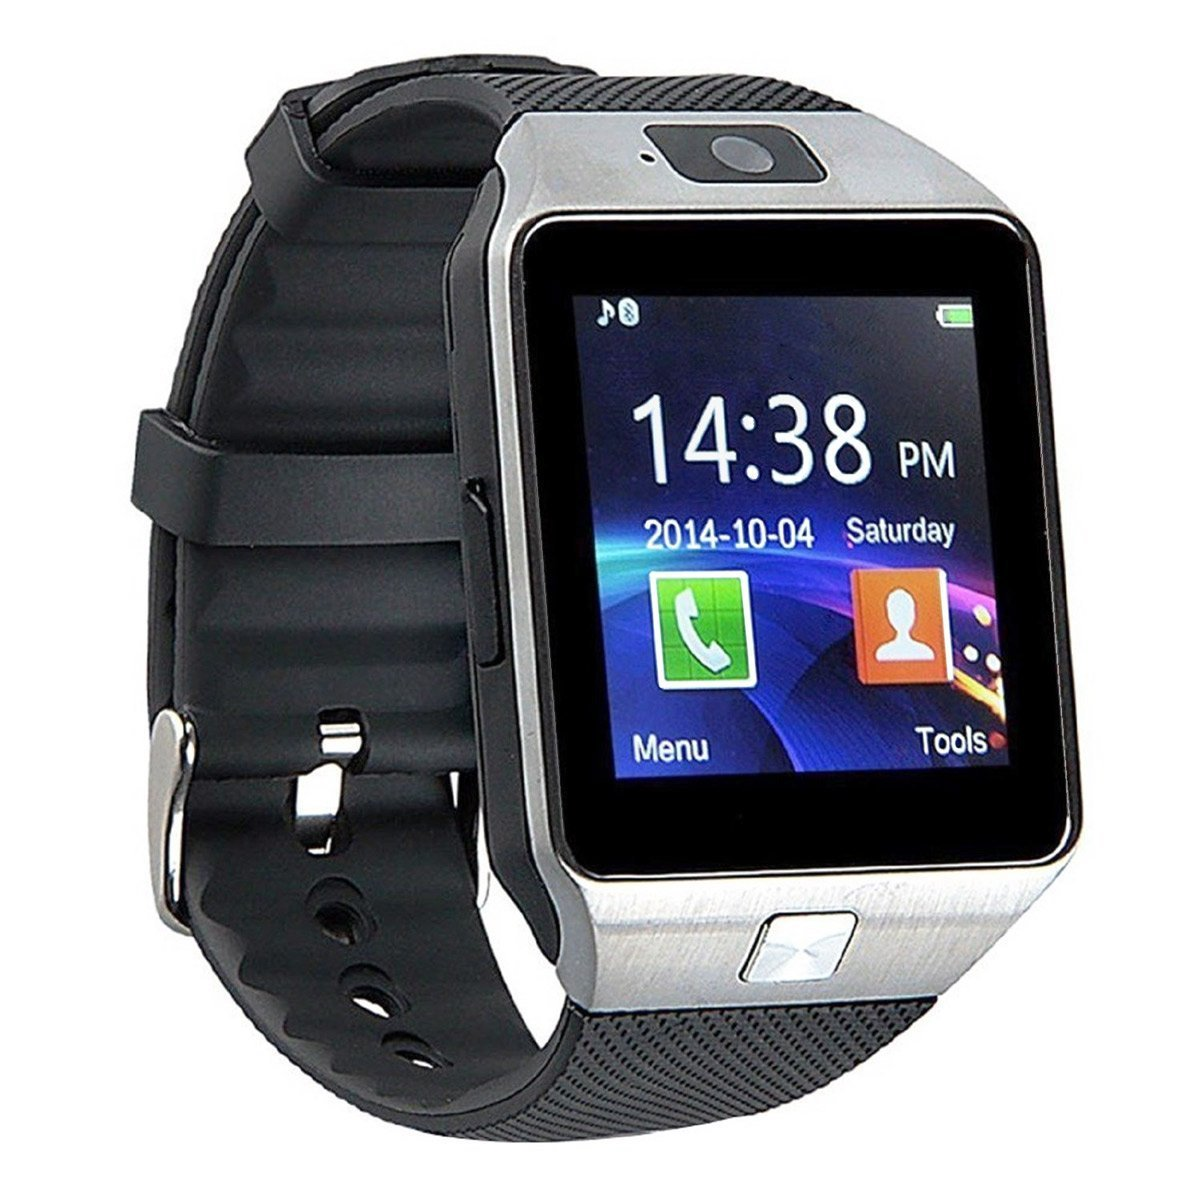 Pandaoo Smart Watch Mobile Phone DZ09 Unlocked Universal GSM, Bluetooth 4.0, Music Player, Camera, Calendar, Stopwatch Sync with Android Smartphones - Silver